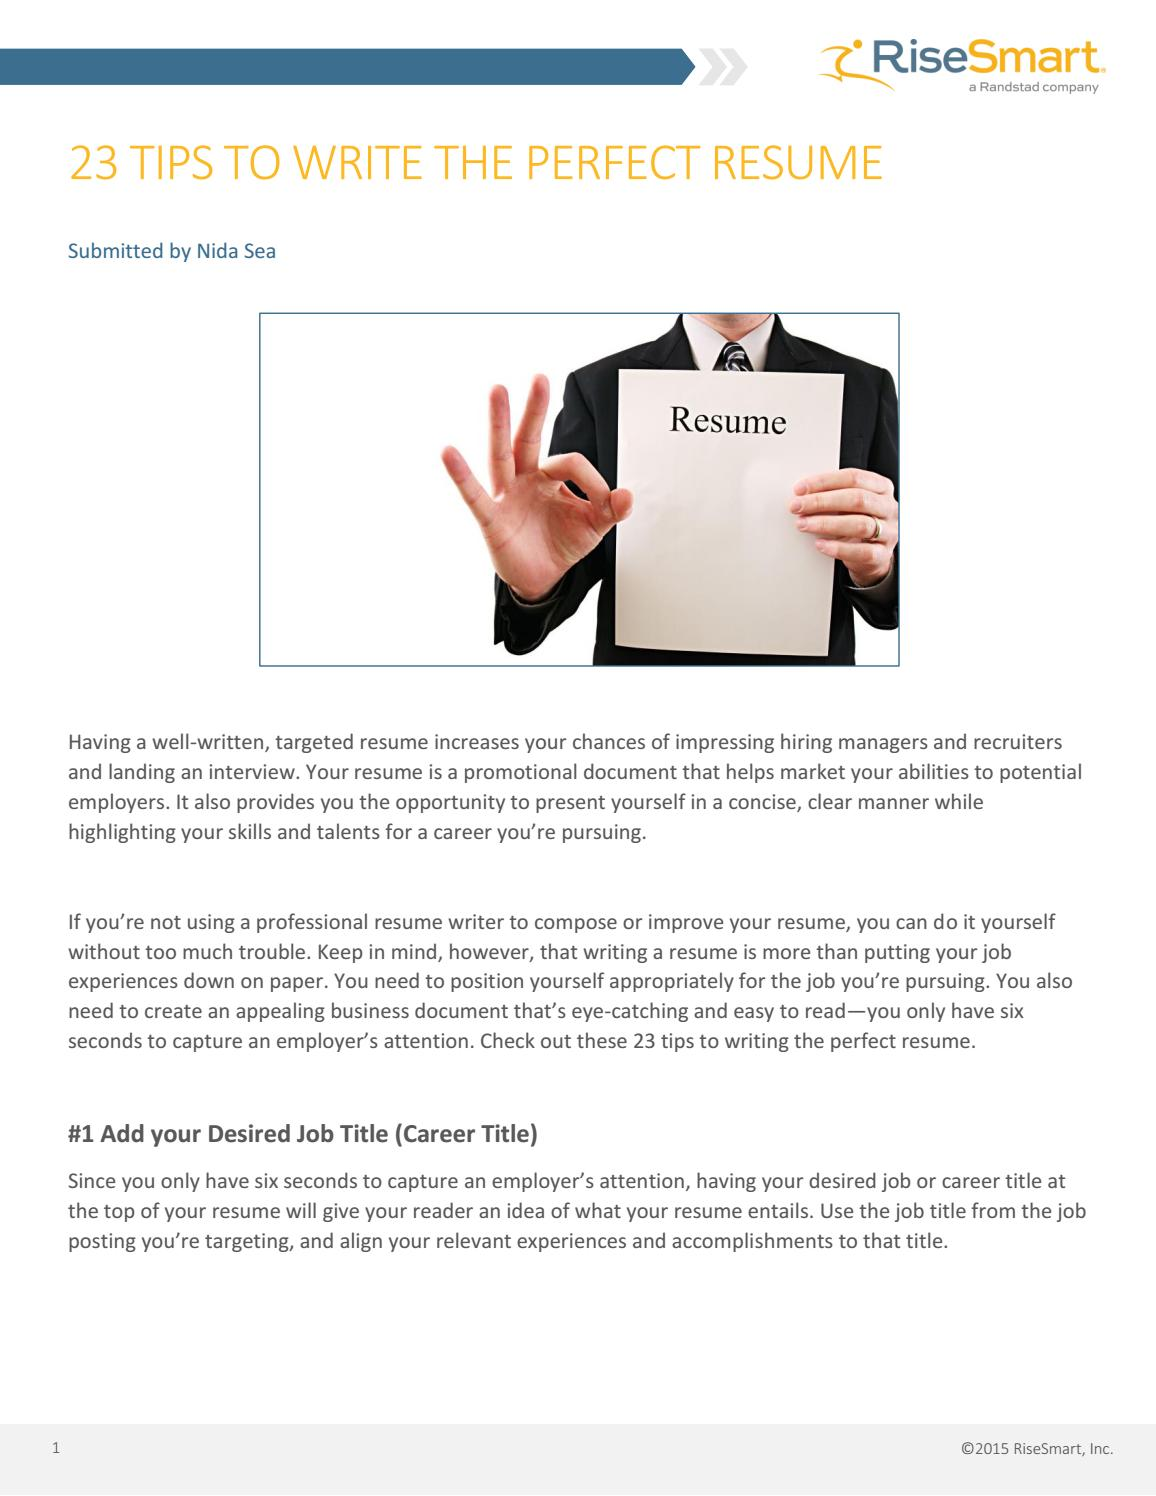 Tips For A Perfect Resume 23 Tips To Write The Perfect Resume By Risesmart Issuu